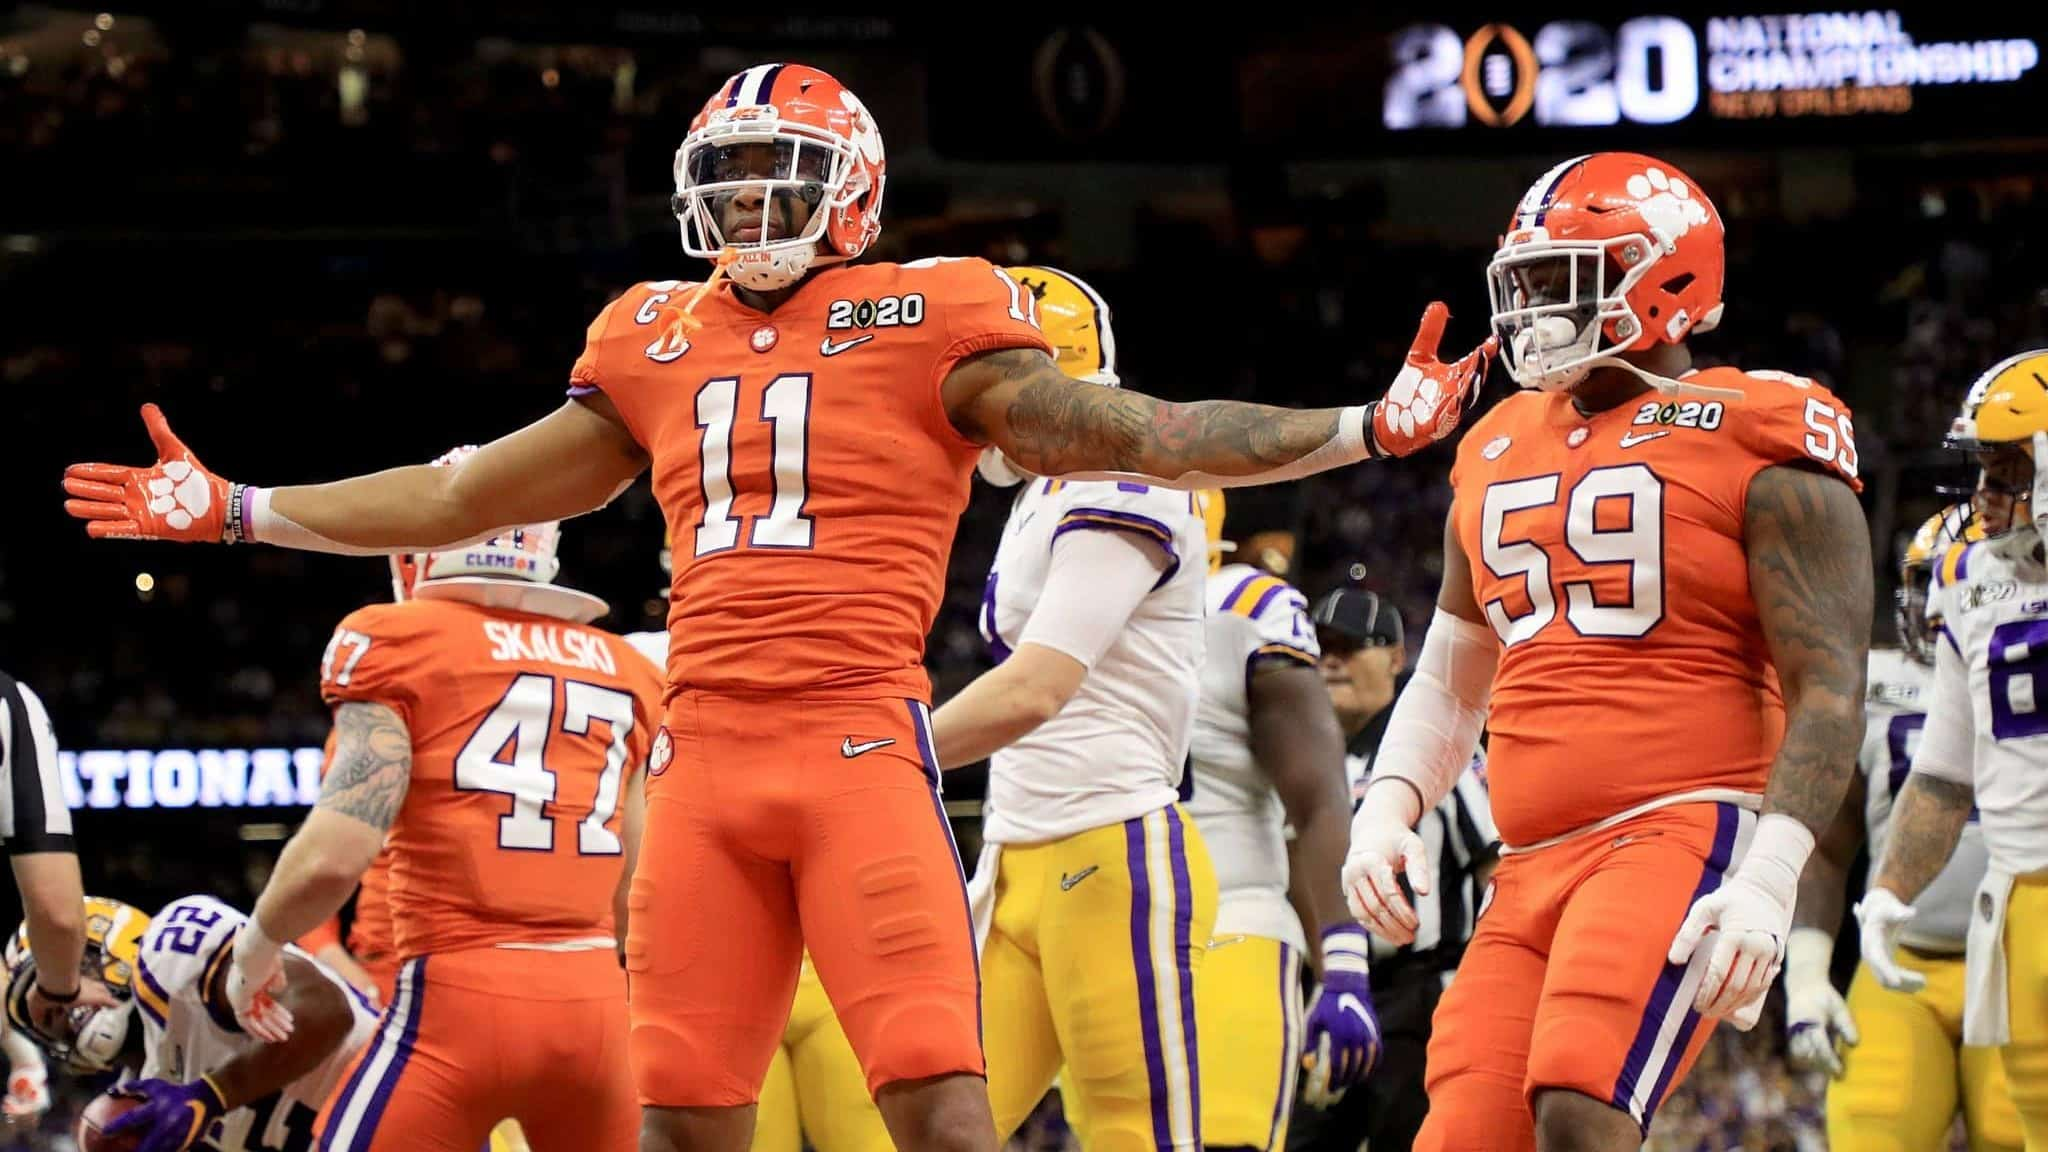 NEW ORLEANS, LOUISIANA - JANUARY 13: Isaiah Simmons #11 of the Clemson Tigers celebrates a defensive stop against the LSU Tigers during the first quarter in the College Football Playoff National Championship game at Mercedes Benz Superdome on January 13, 2020 in New Orleans, Louisiana.